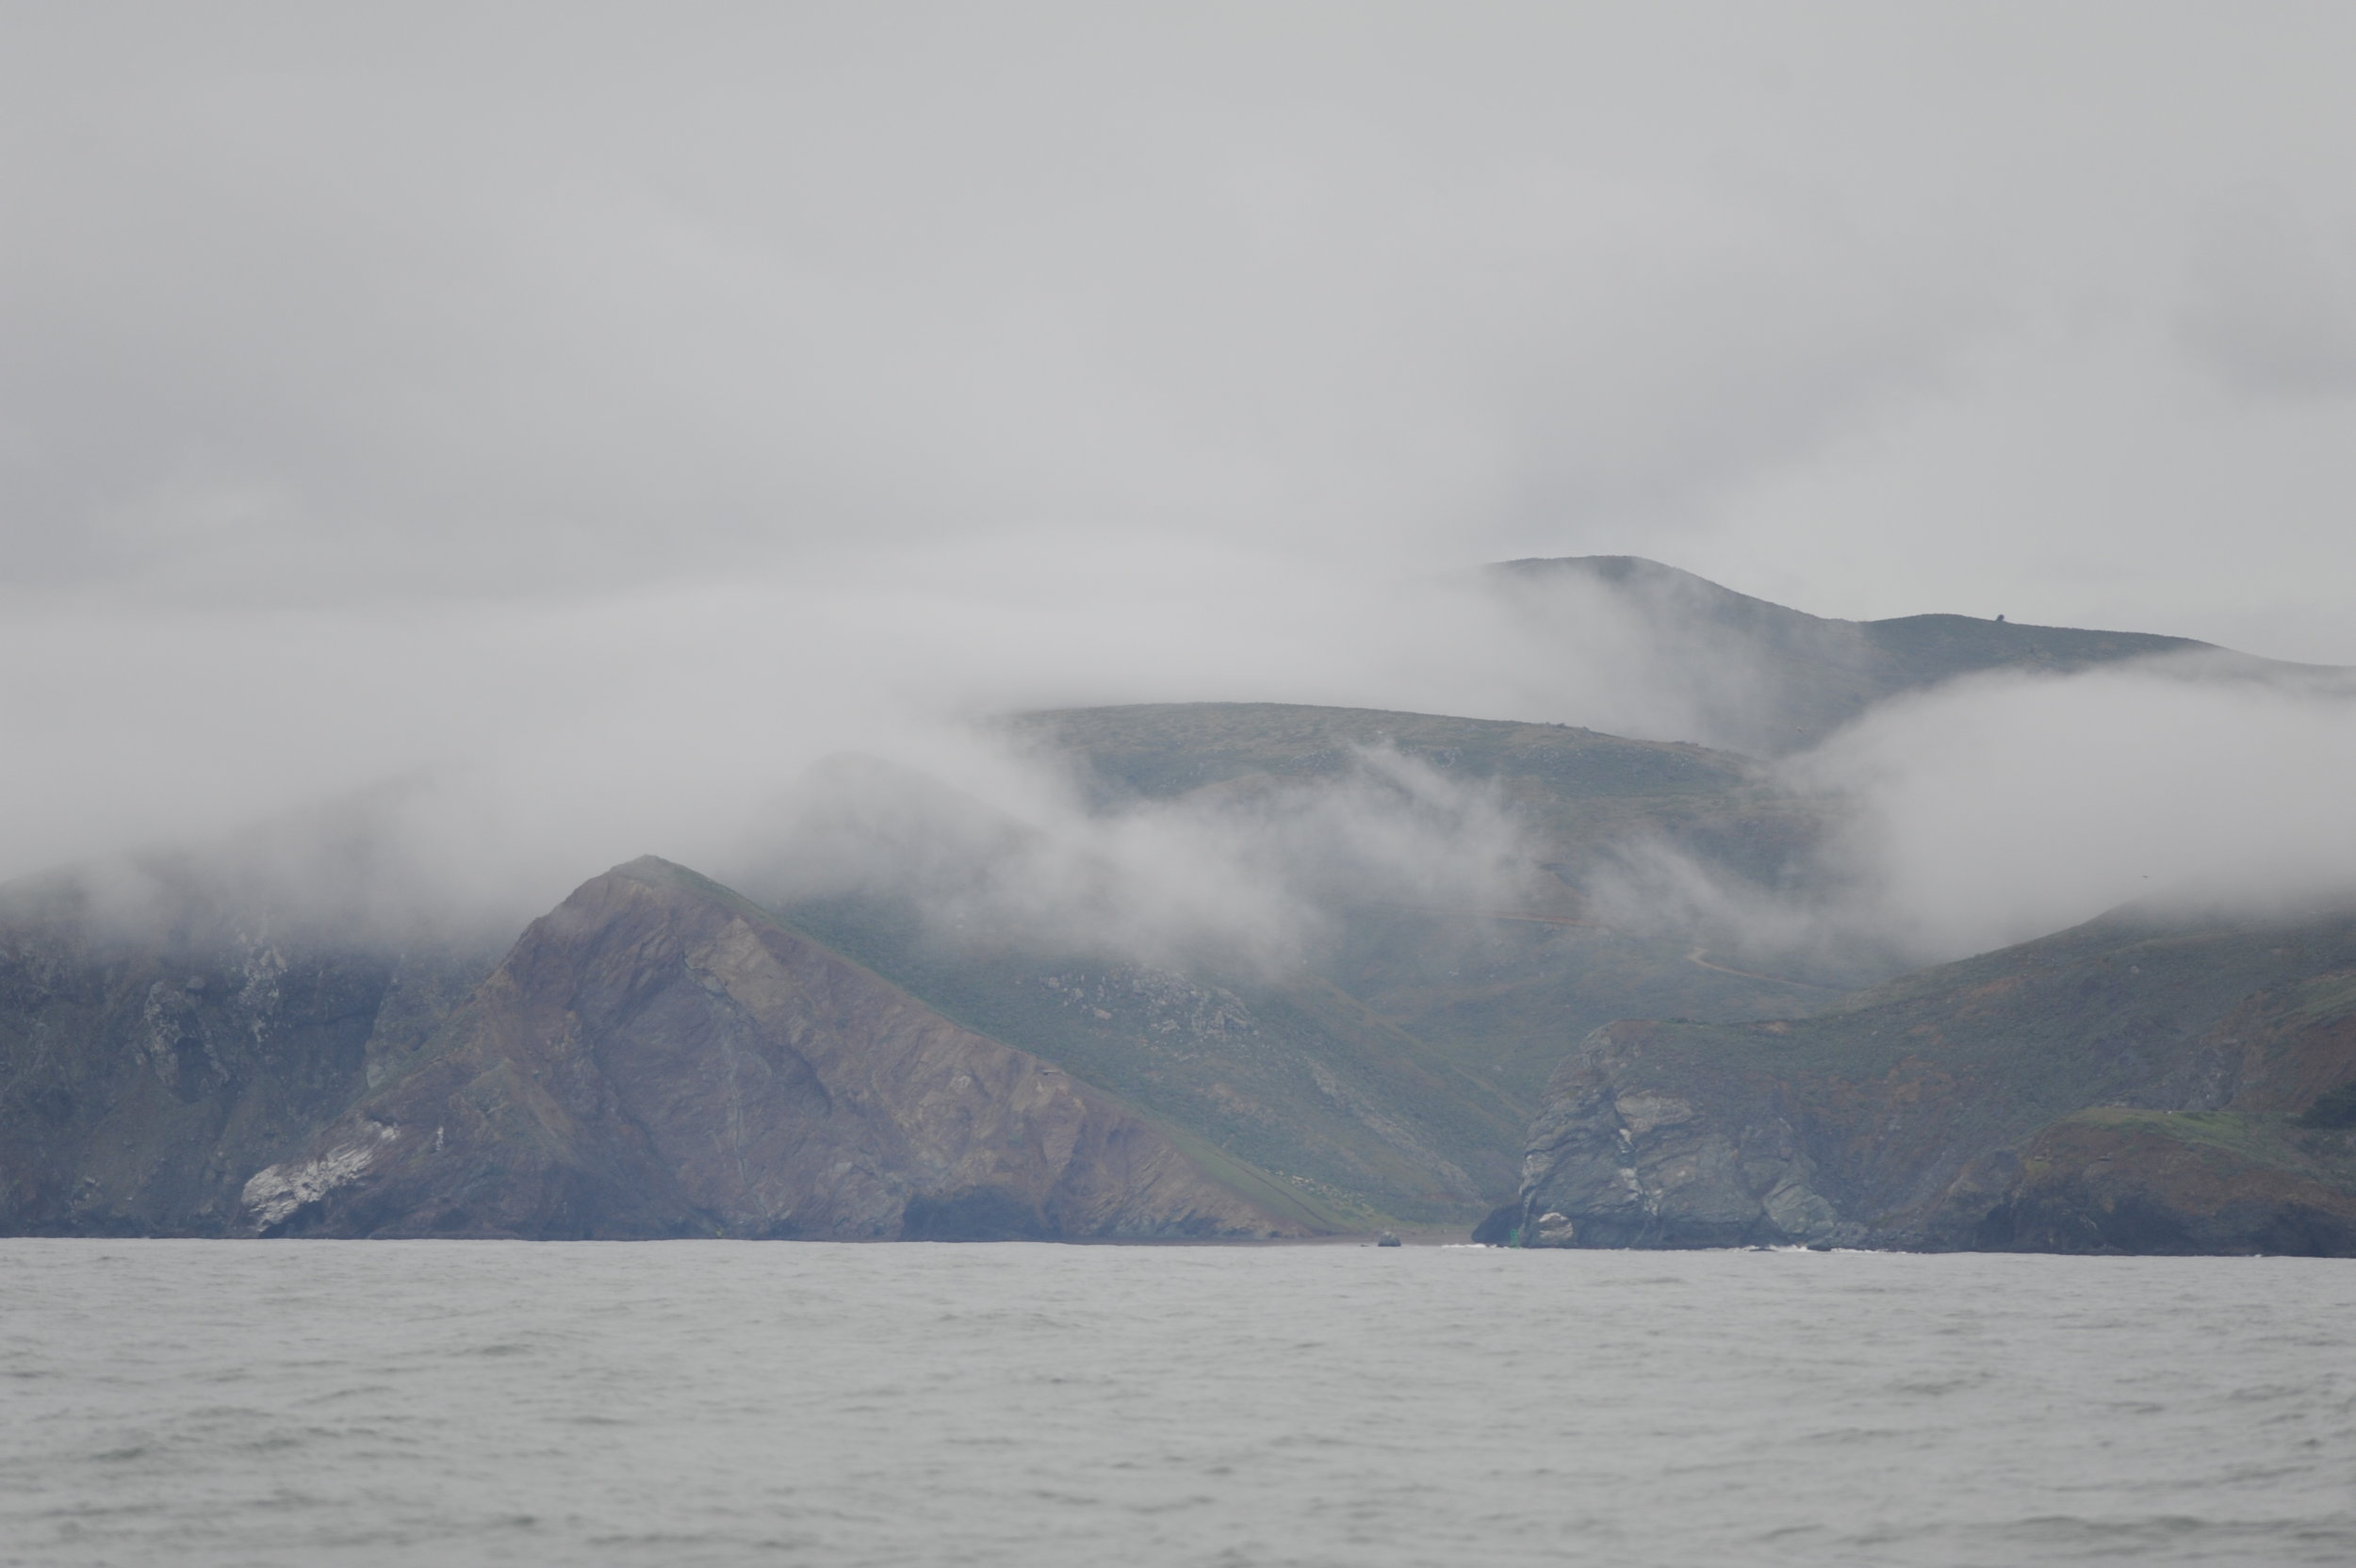 Clouds over Marin.